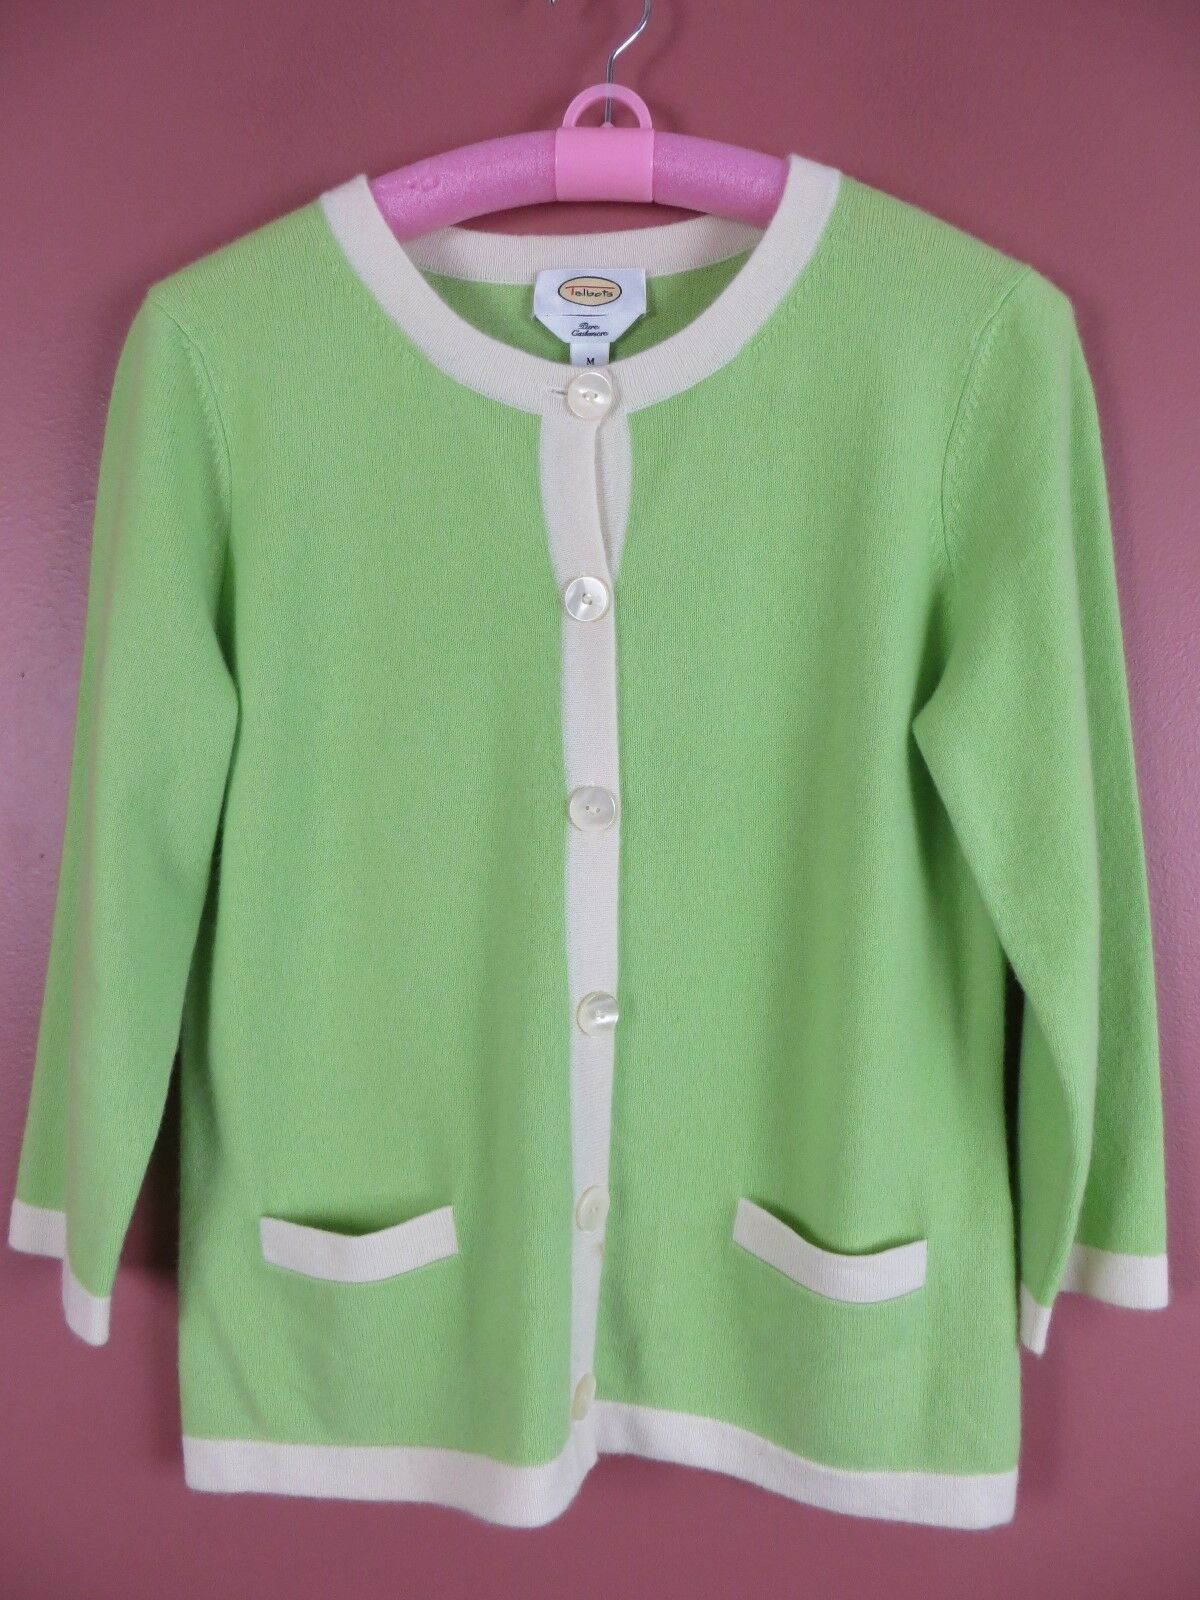 CSM01661- TALBOTS Womens Pure Cashmere Cardigan Sweater Green Ivory Sz M MINT